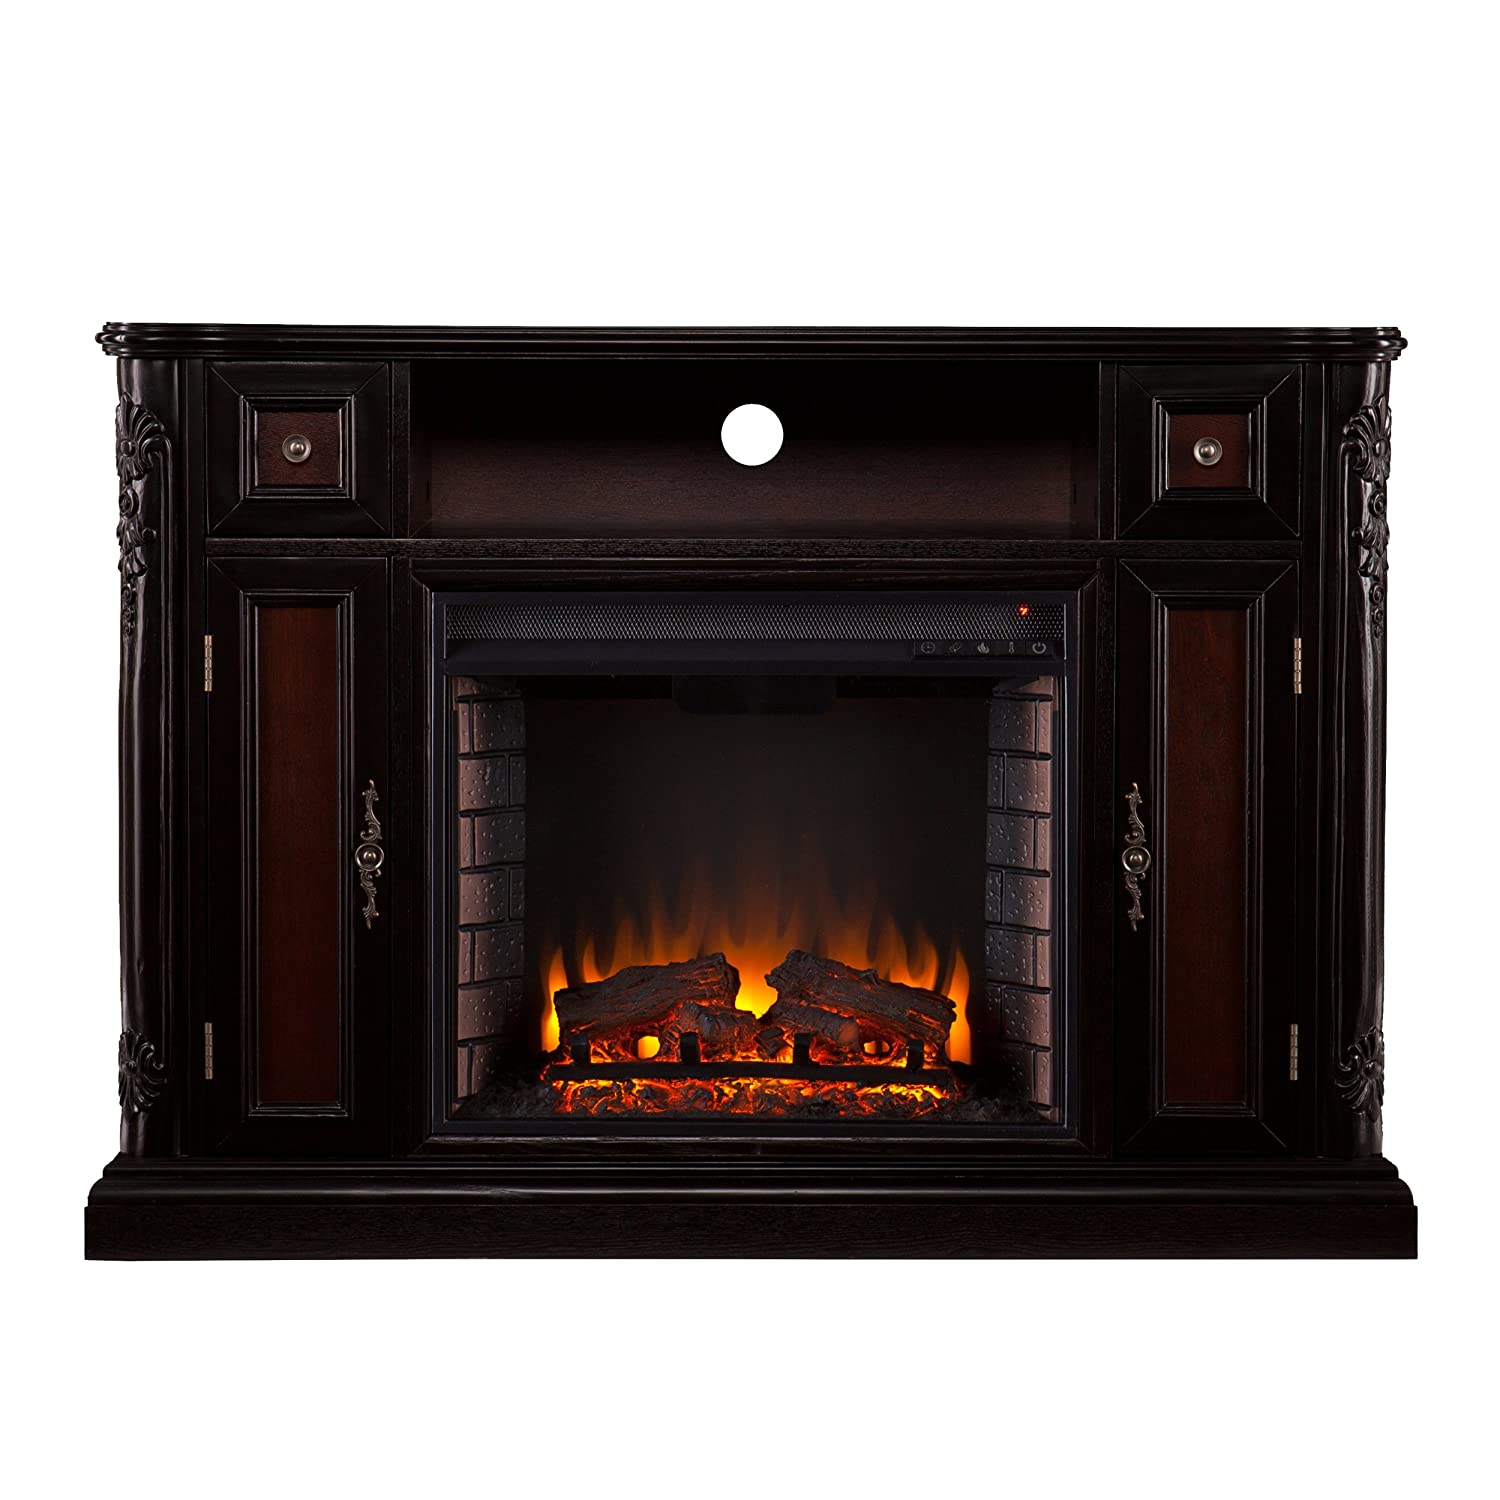 Most wished for - Portable & Electric Fireplaces Amazon.com